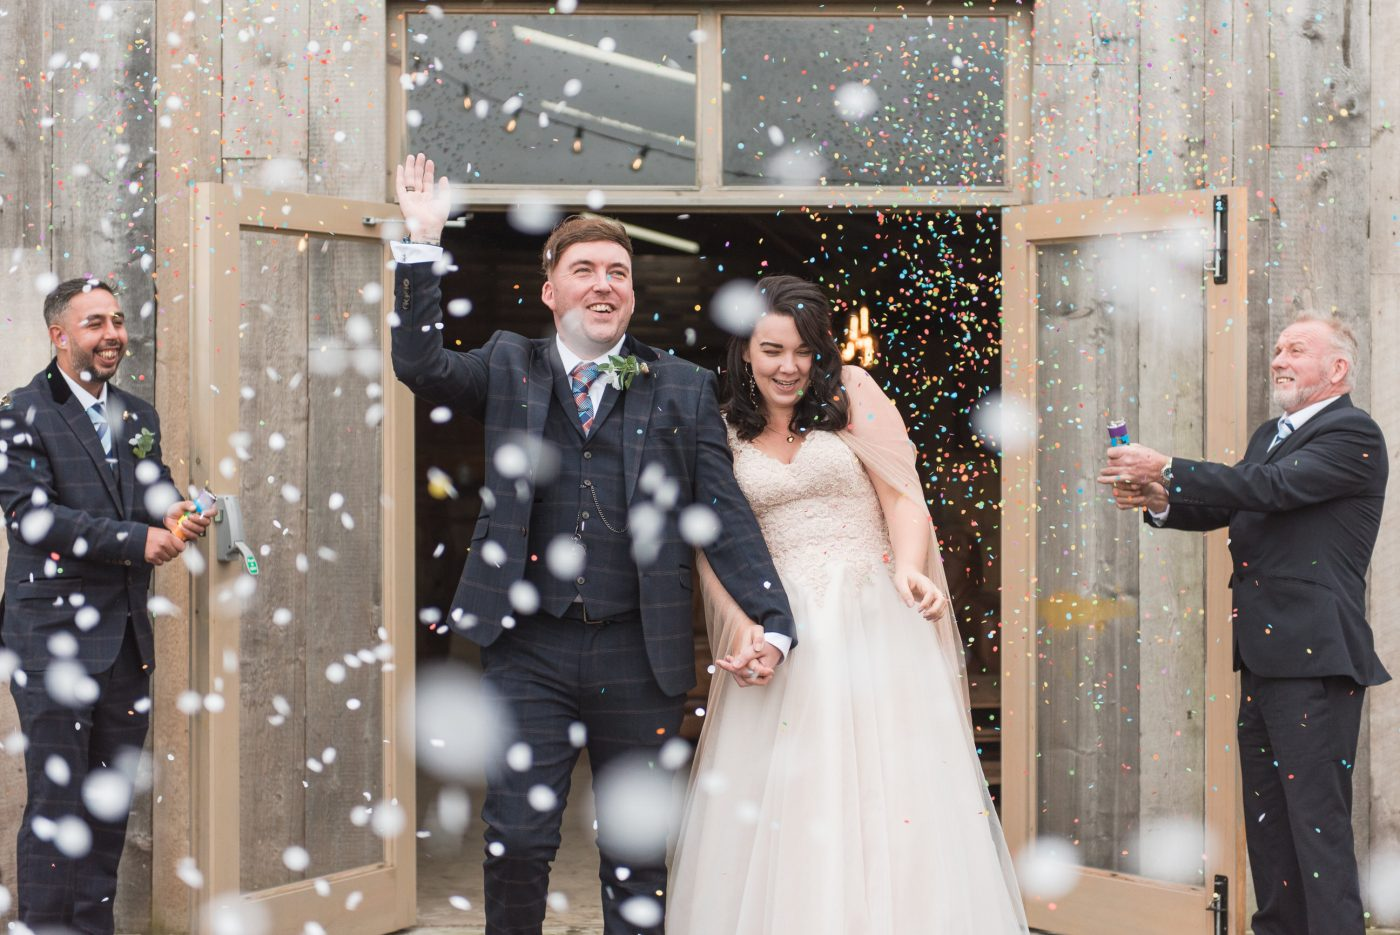 Wedding Photography by Lisa Lander Photography